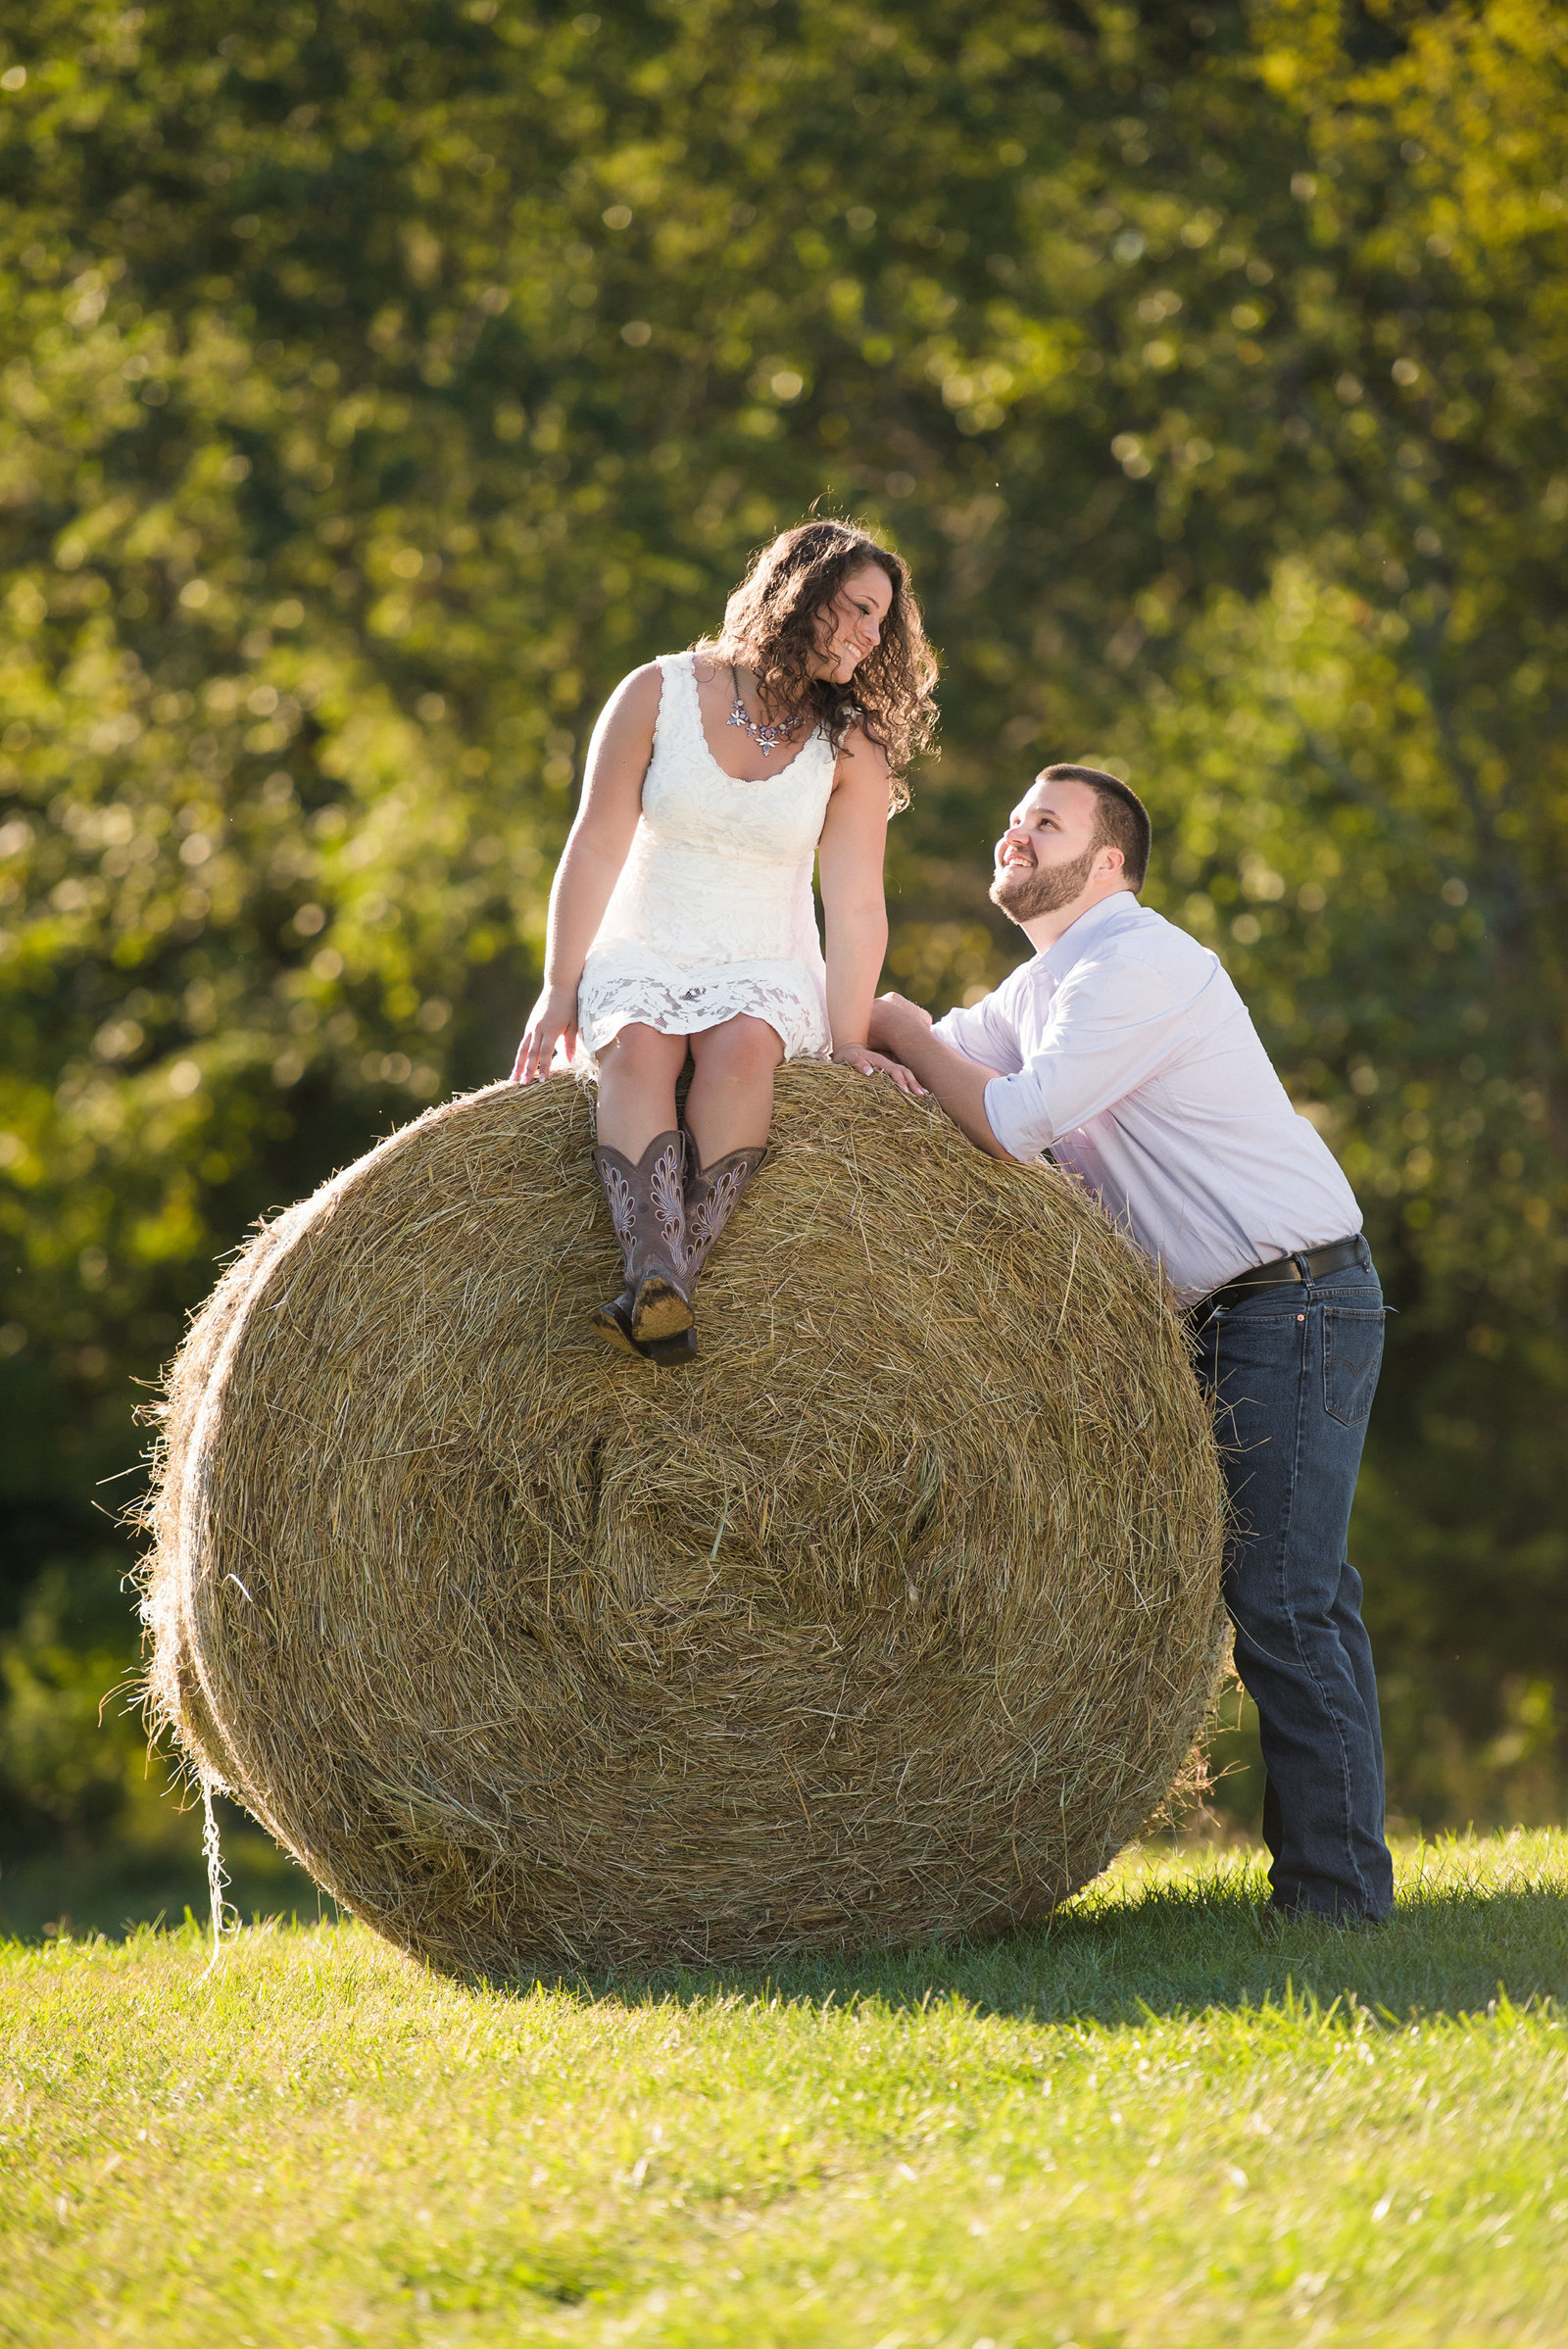 NJ_Rustic_Engagement_Photography008